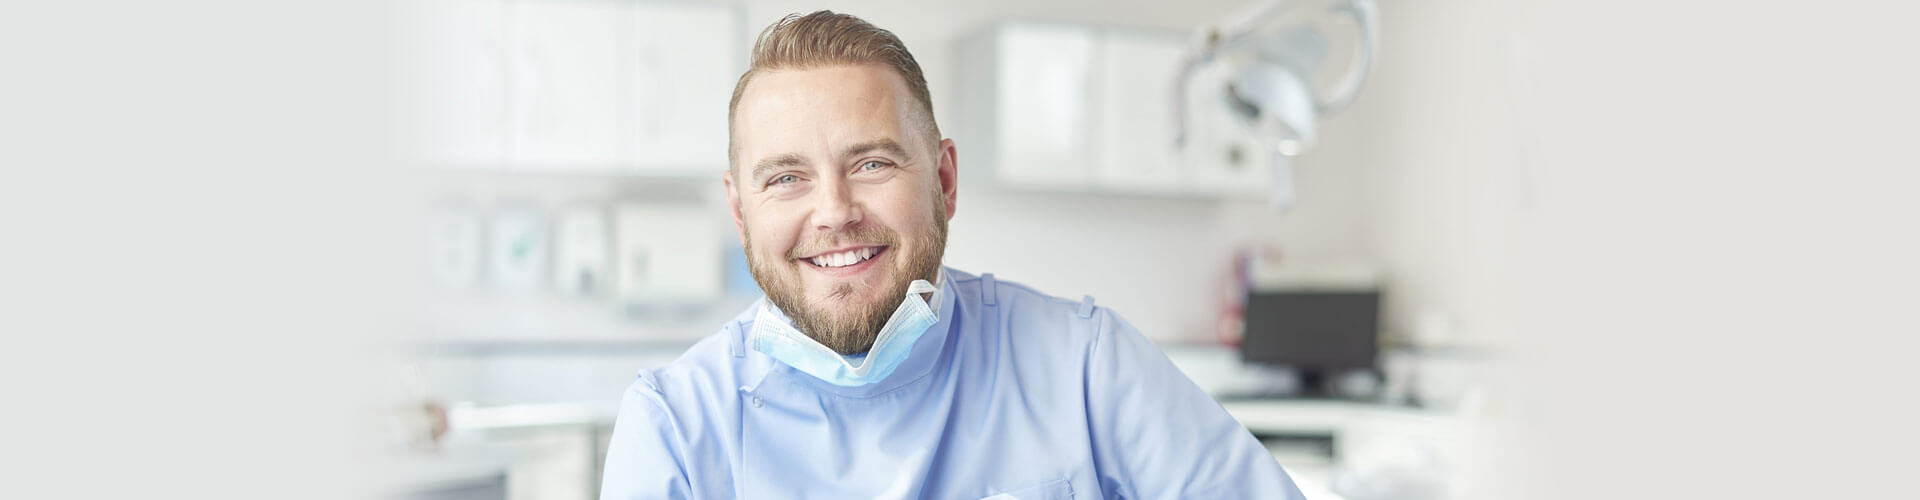 The Top 4 2018 Digital Marketing Trends for Dentists